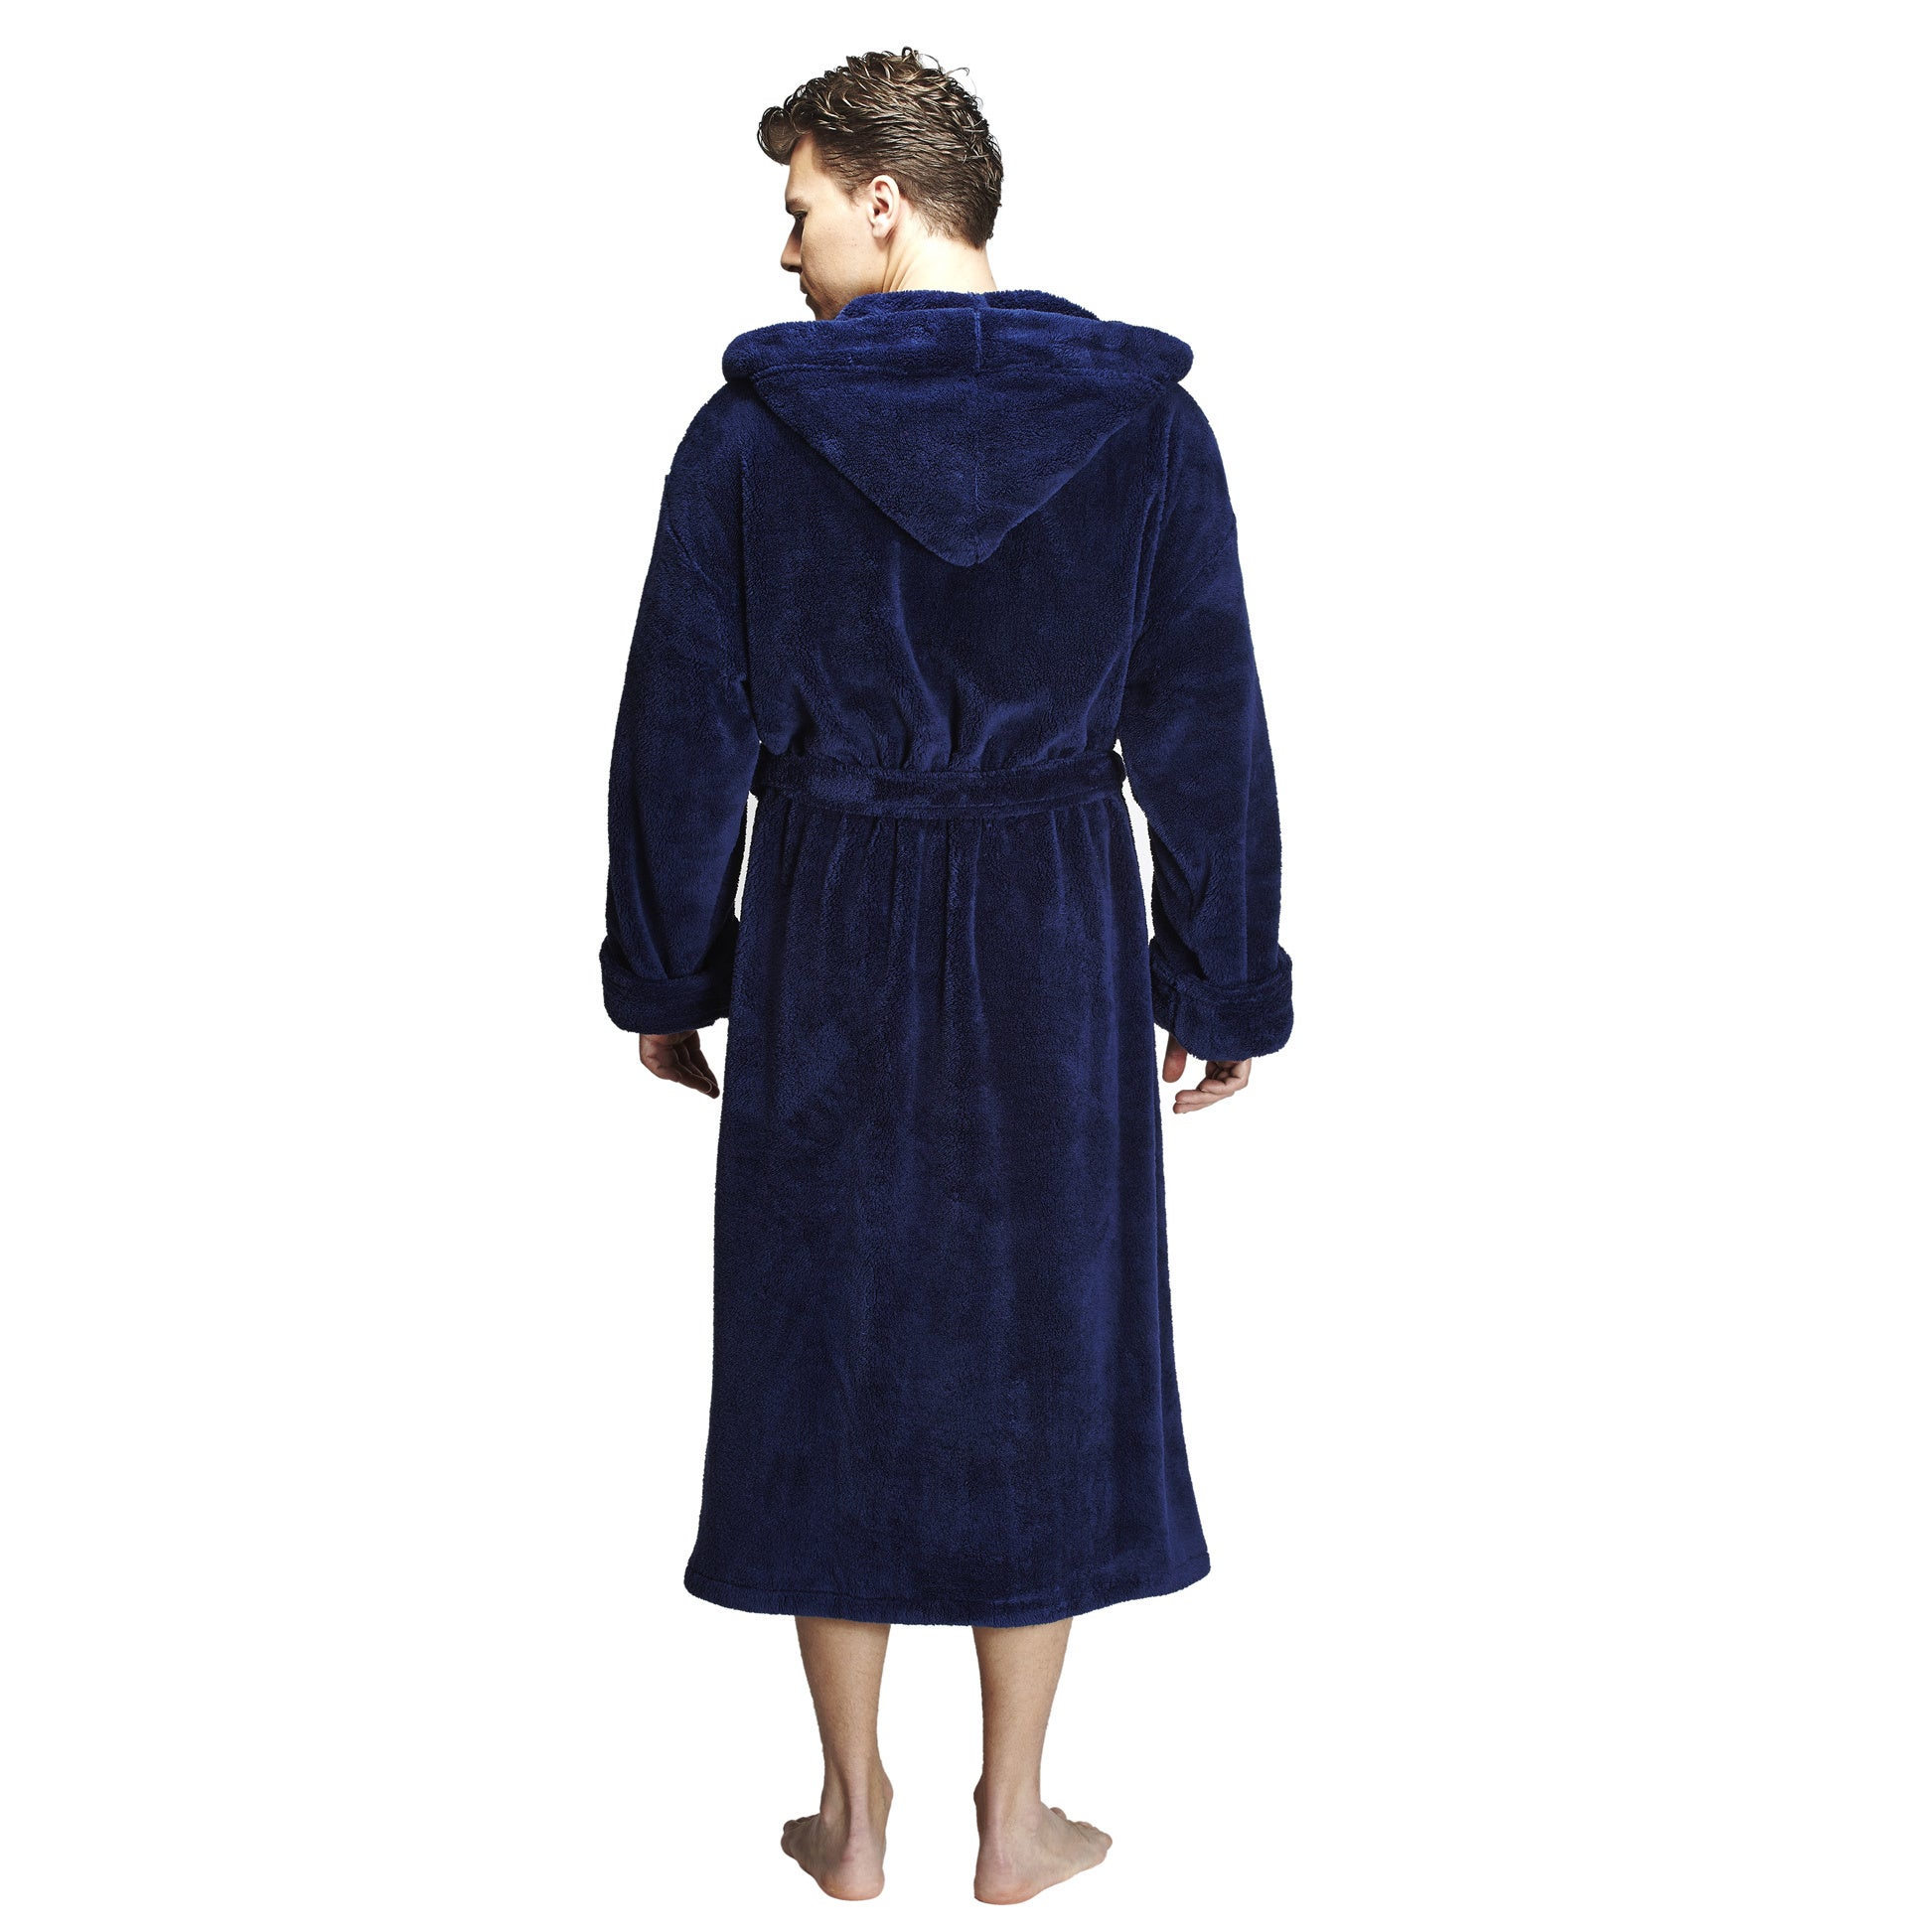 5b3f9bfd33 Shop Men s Hooded Fleece Bathrobe Turkish Soft Plush Robe - Free Shipping  Today - Overstock - 14387064